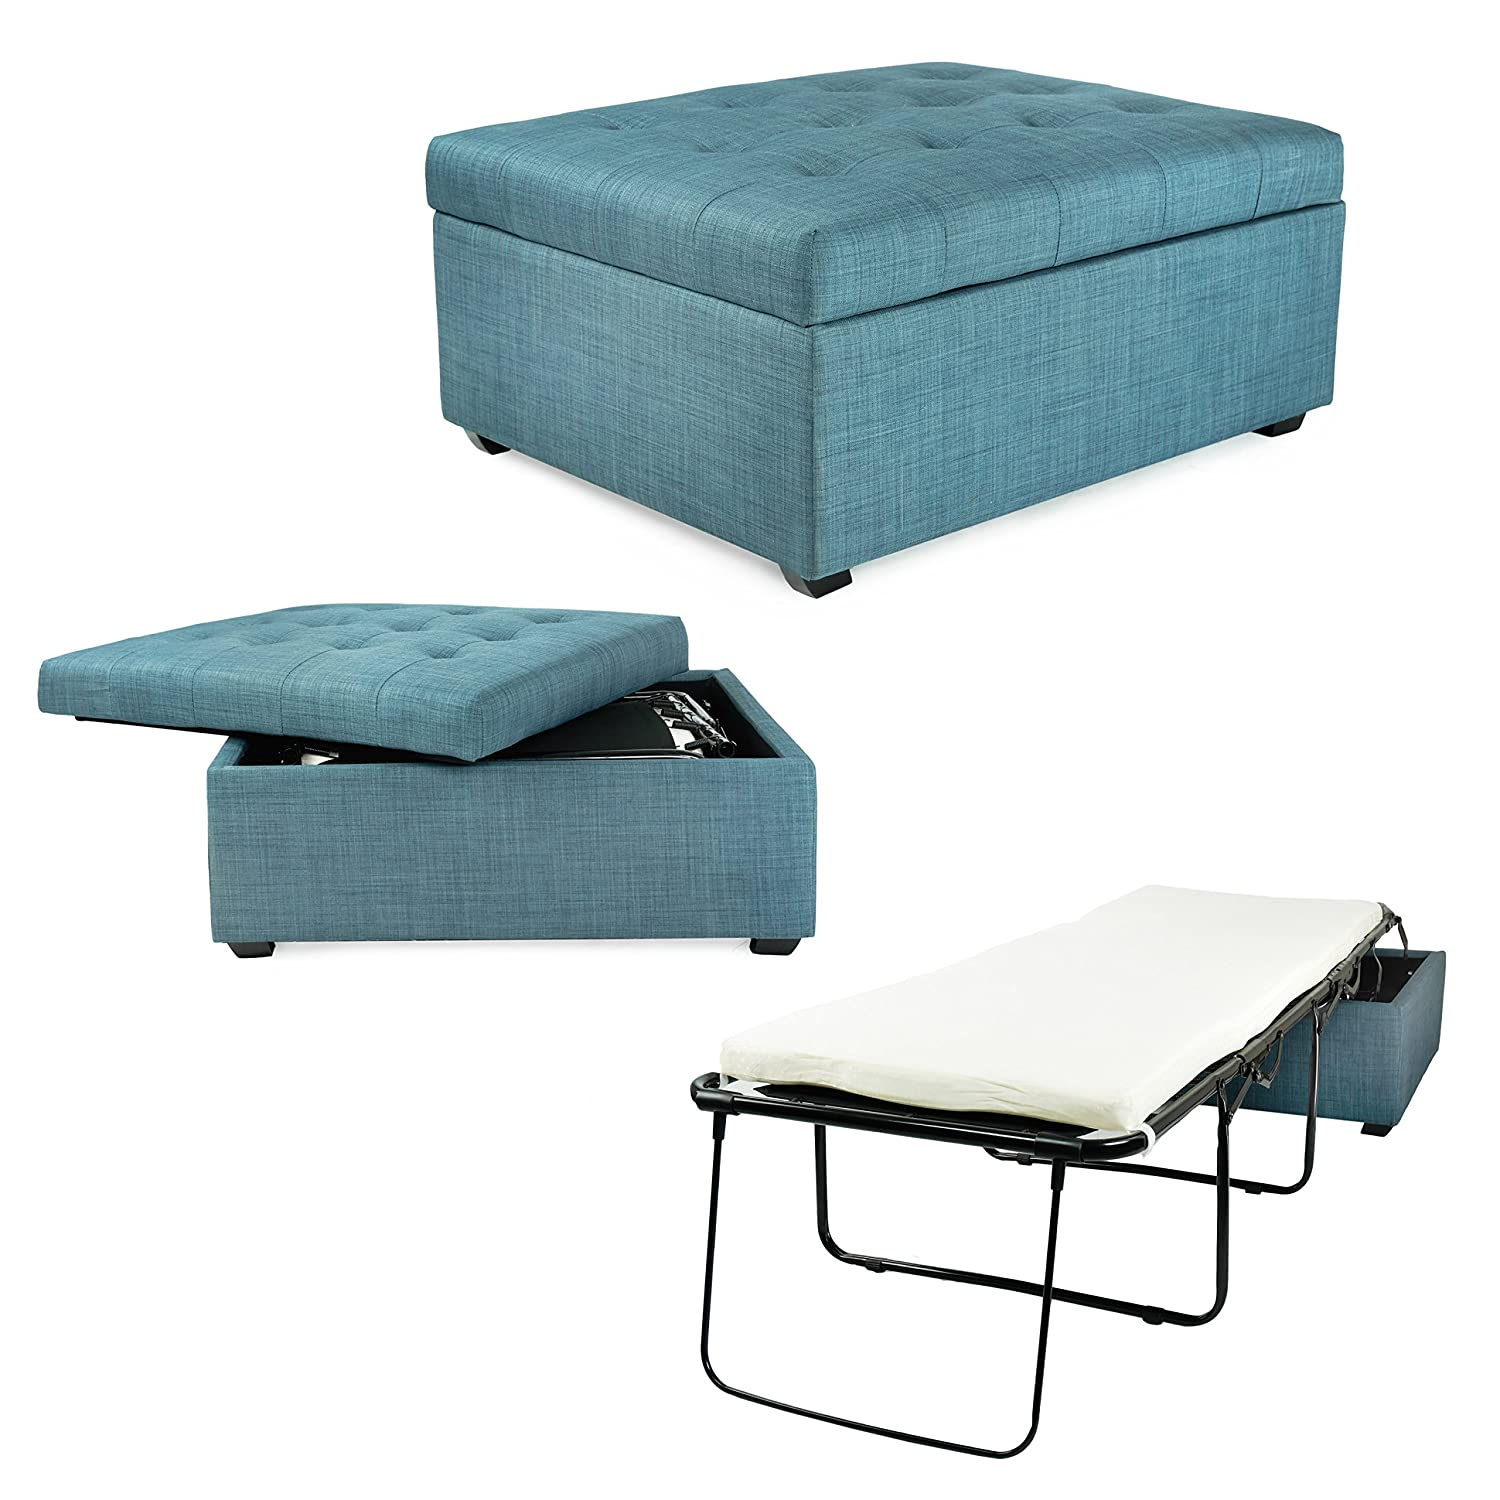 Superb Spacemaster Pc333 Ibed Convertible Guest Blue Fabric Discontinued Ottoman Bed Cjindustries Chair Design For Home Cjindustriesco